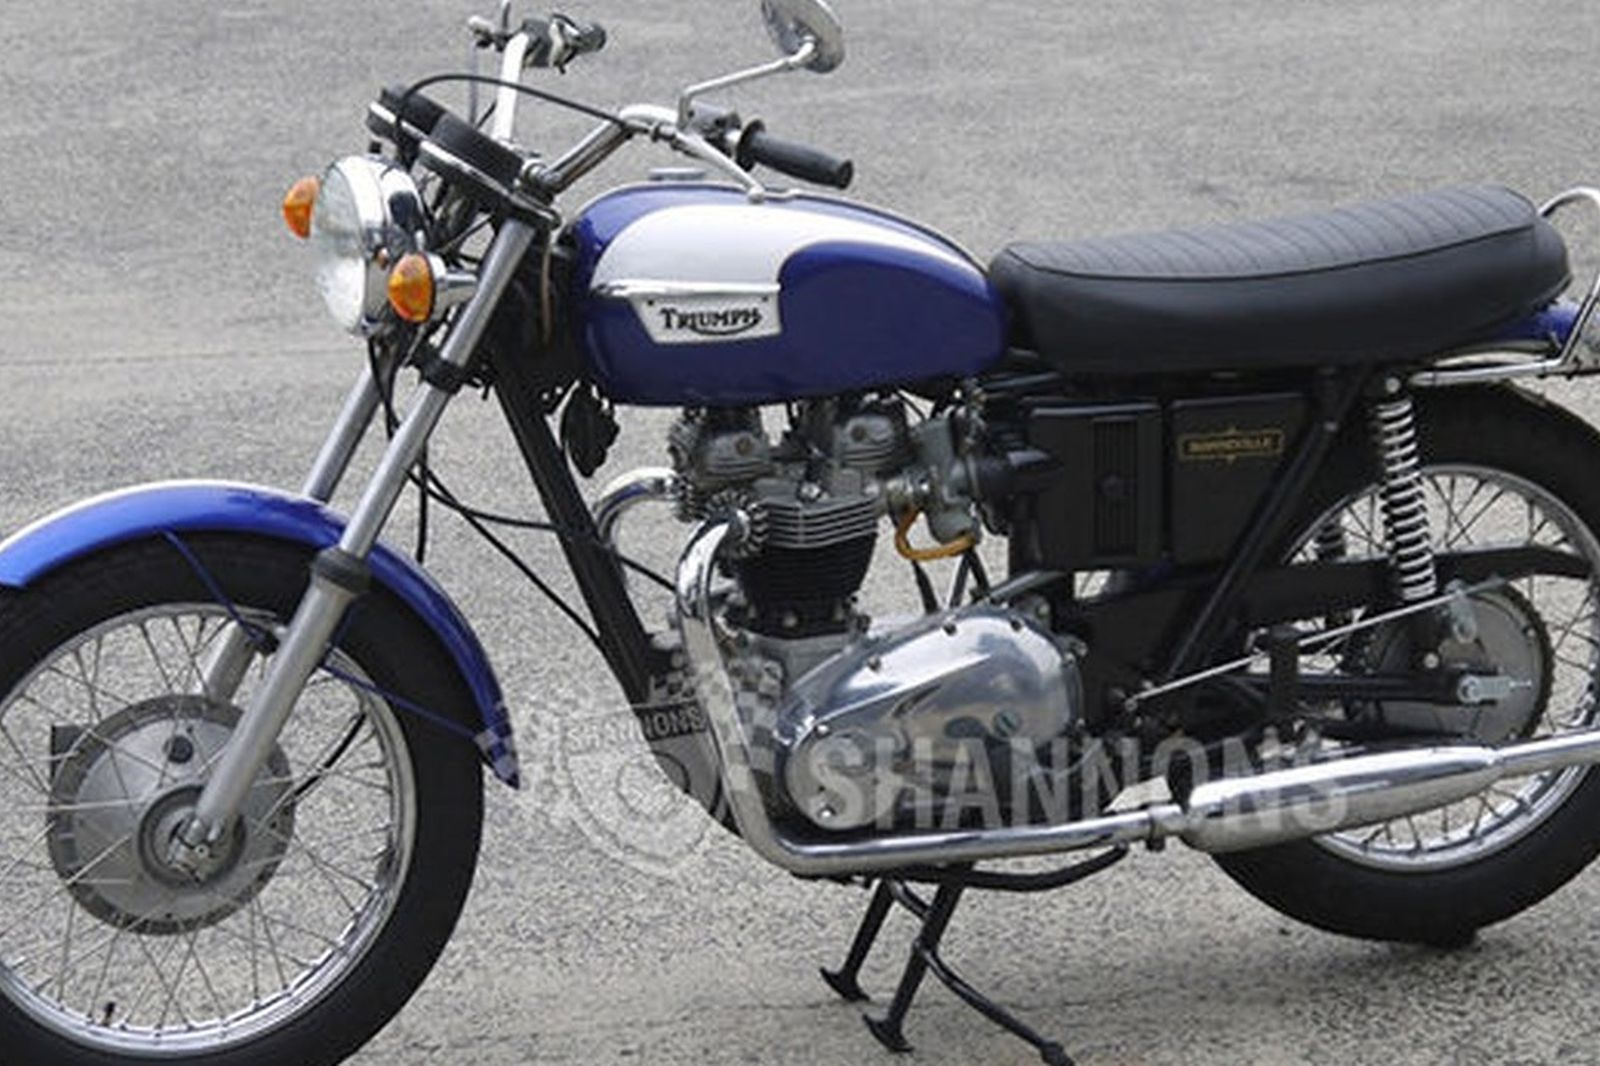 Triumph T120 Bonneville 650cc Motorcycle Auctions